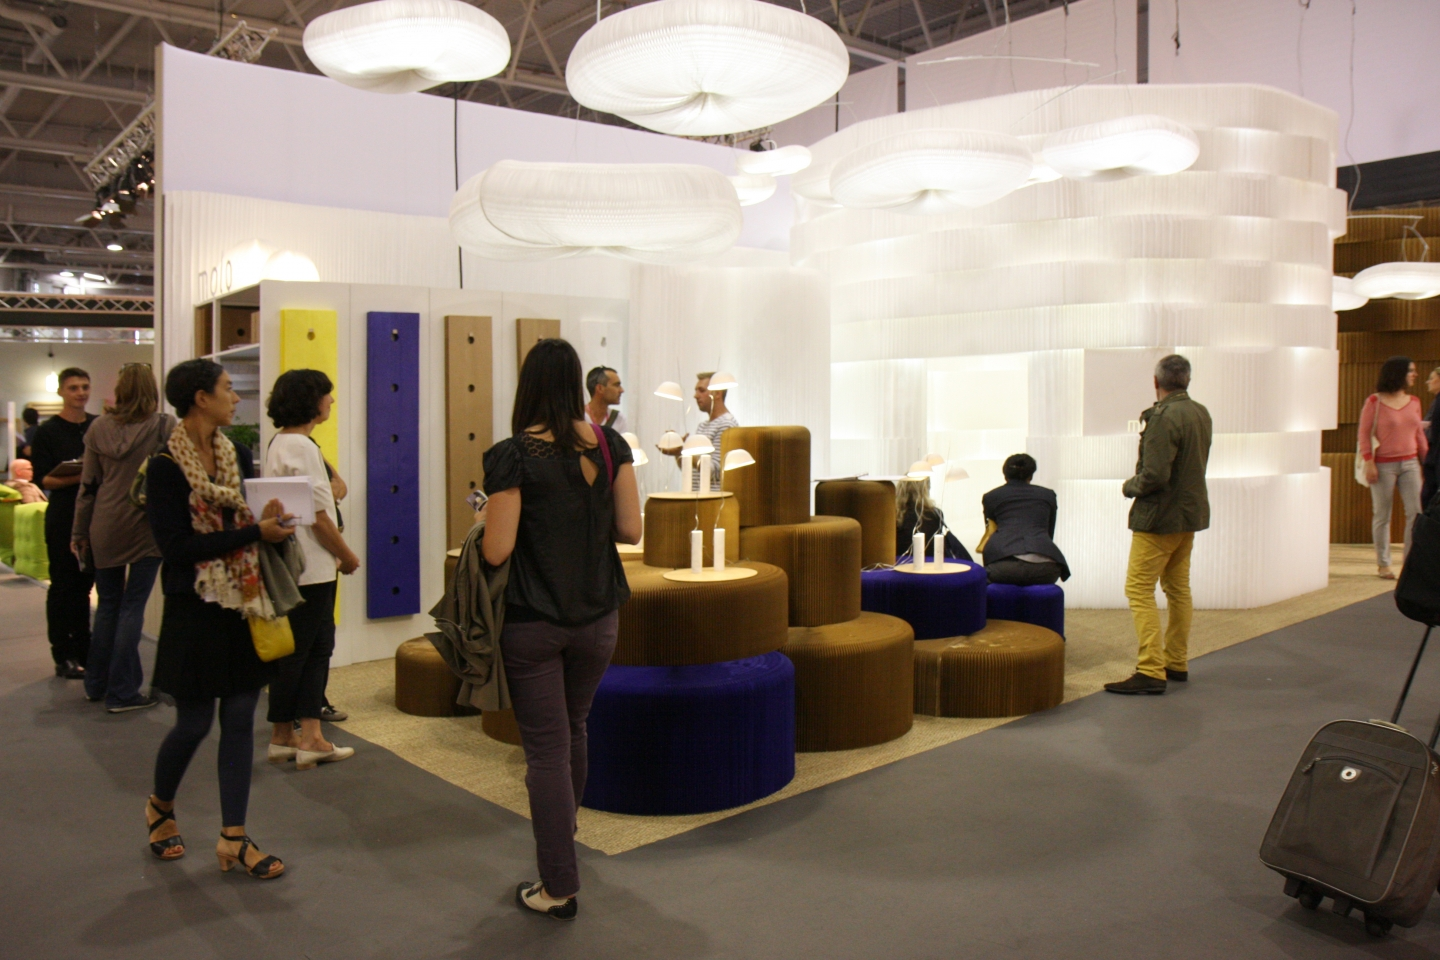 molo's installation at Maison & Objet 2011 featured custom colour softwalls, cloud pendant lighting, softseating, cappello and LED for textile softblock.